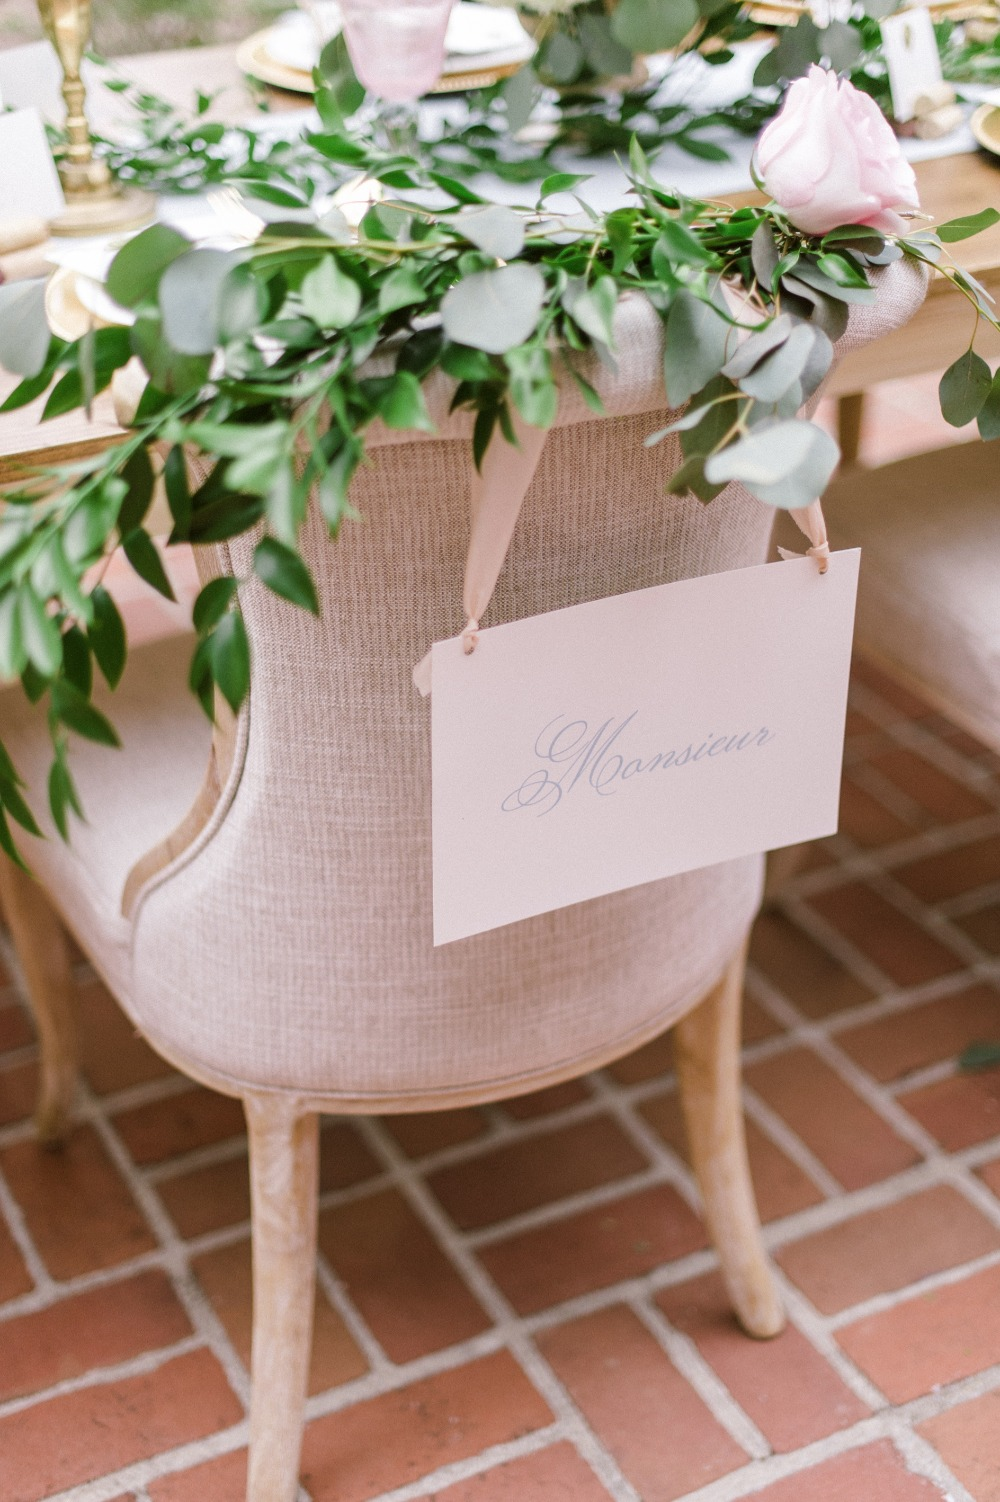 Mounsieur groom seat sign draped in a flower garland